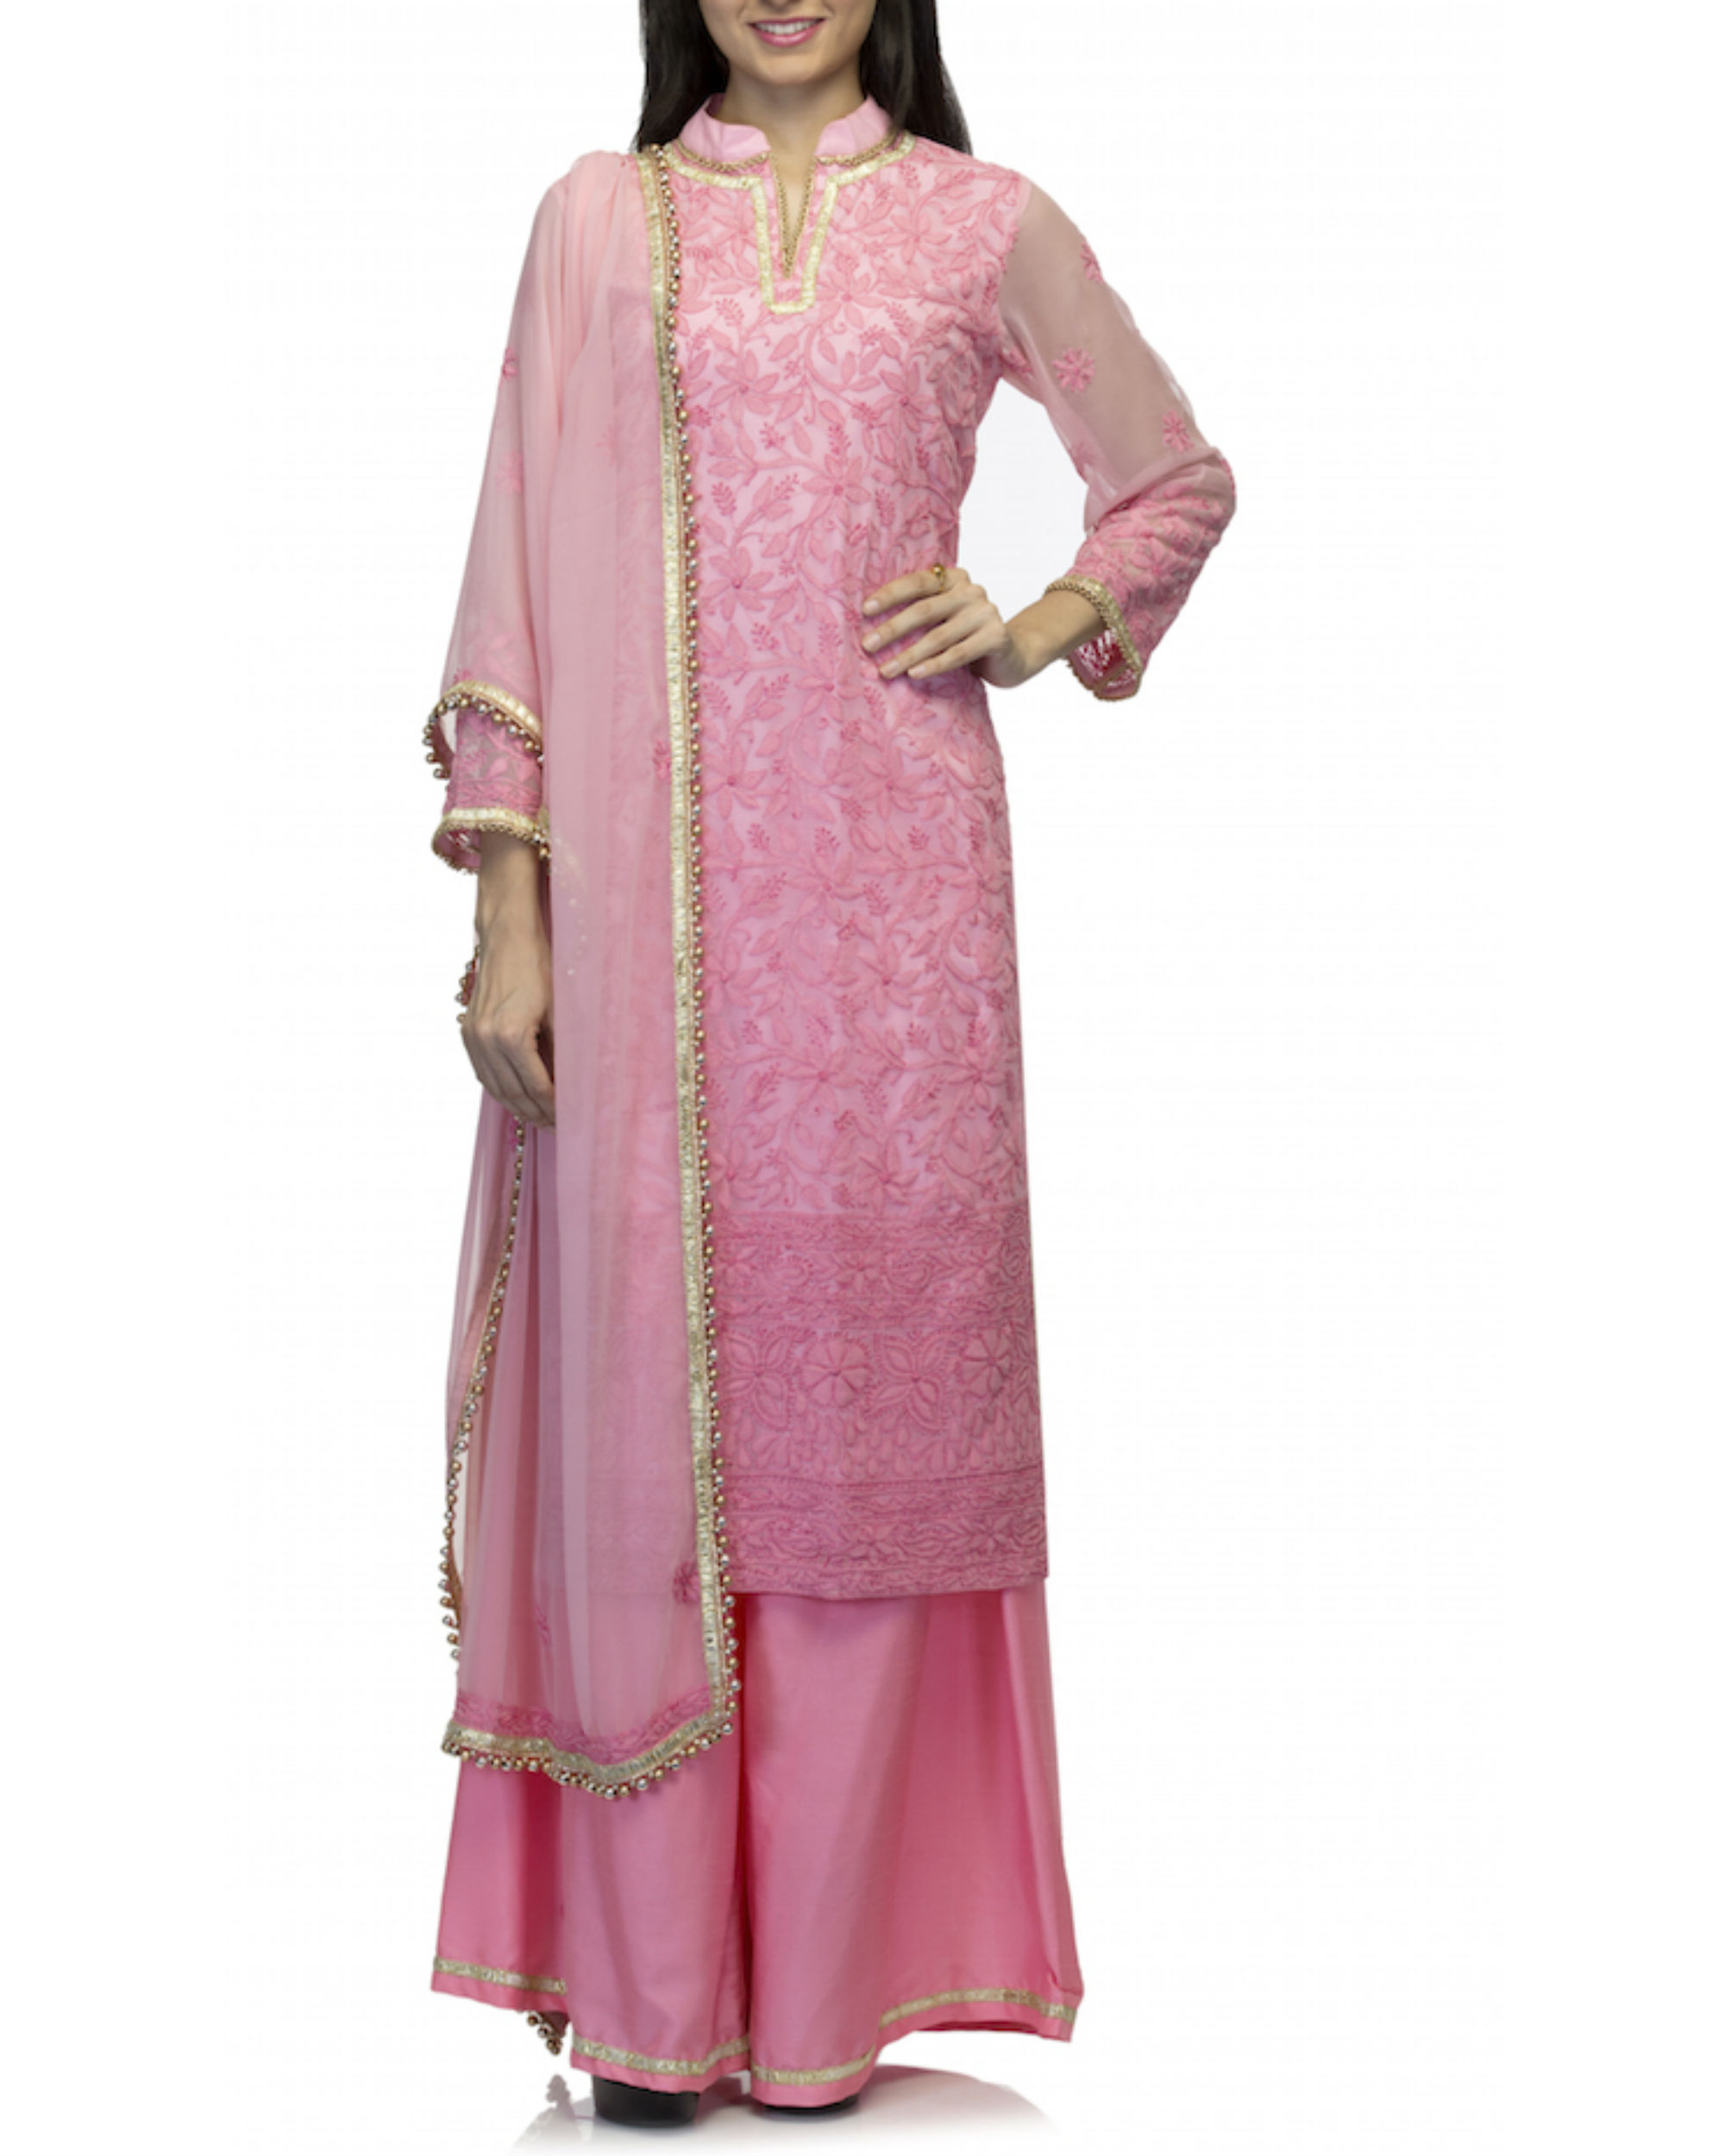 Pink kurta set with dupatta